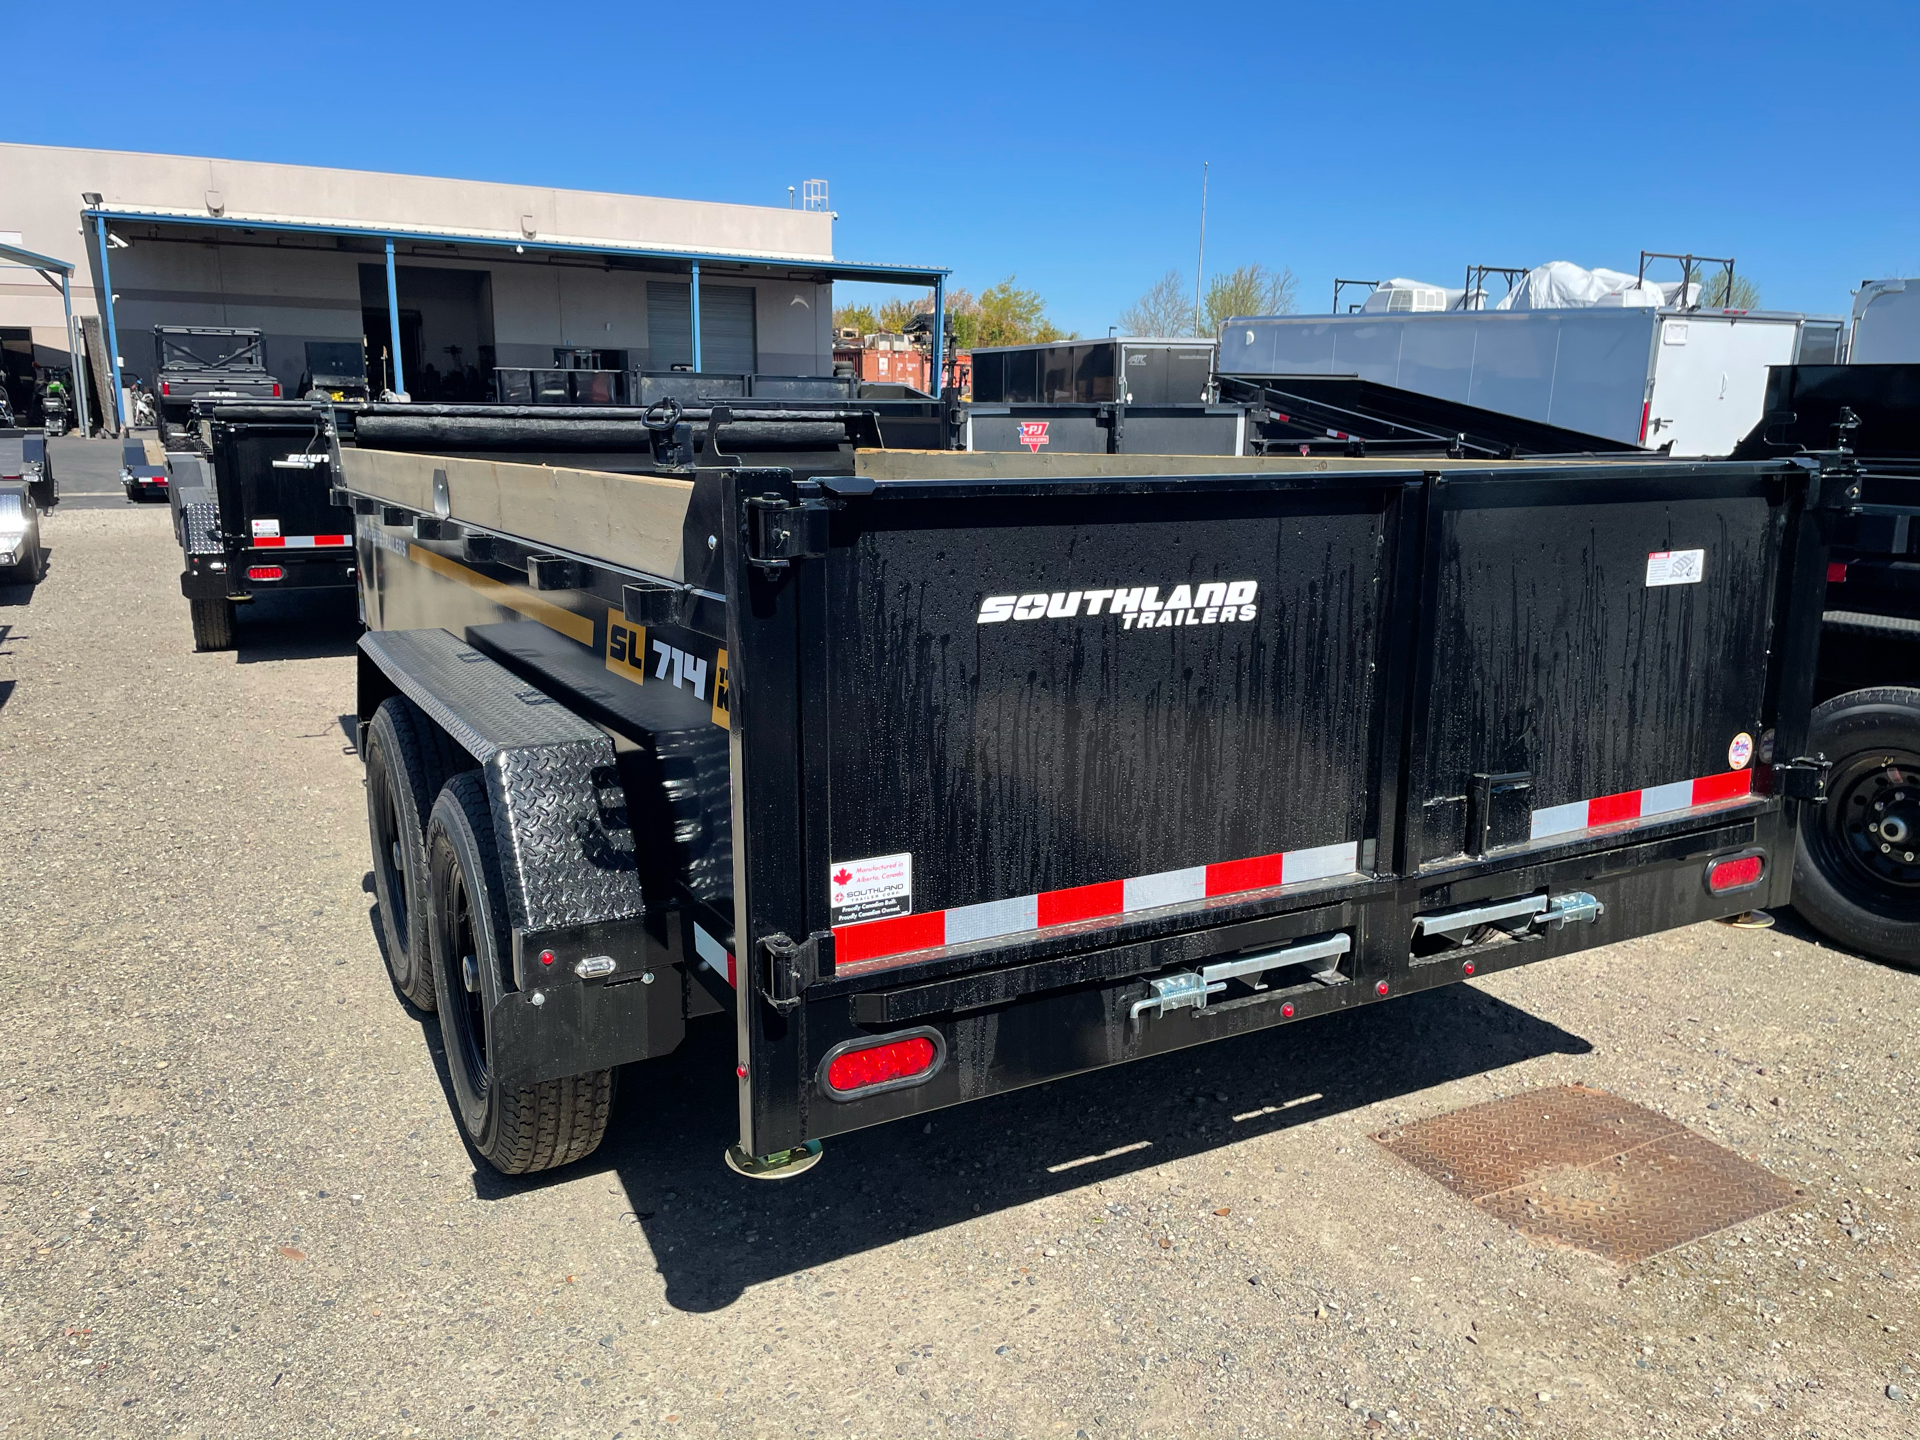 2021 SOUTHLAND TRAILER CORP SL714-14K DUMP in Elk Grove, California - Photo 4